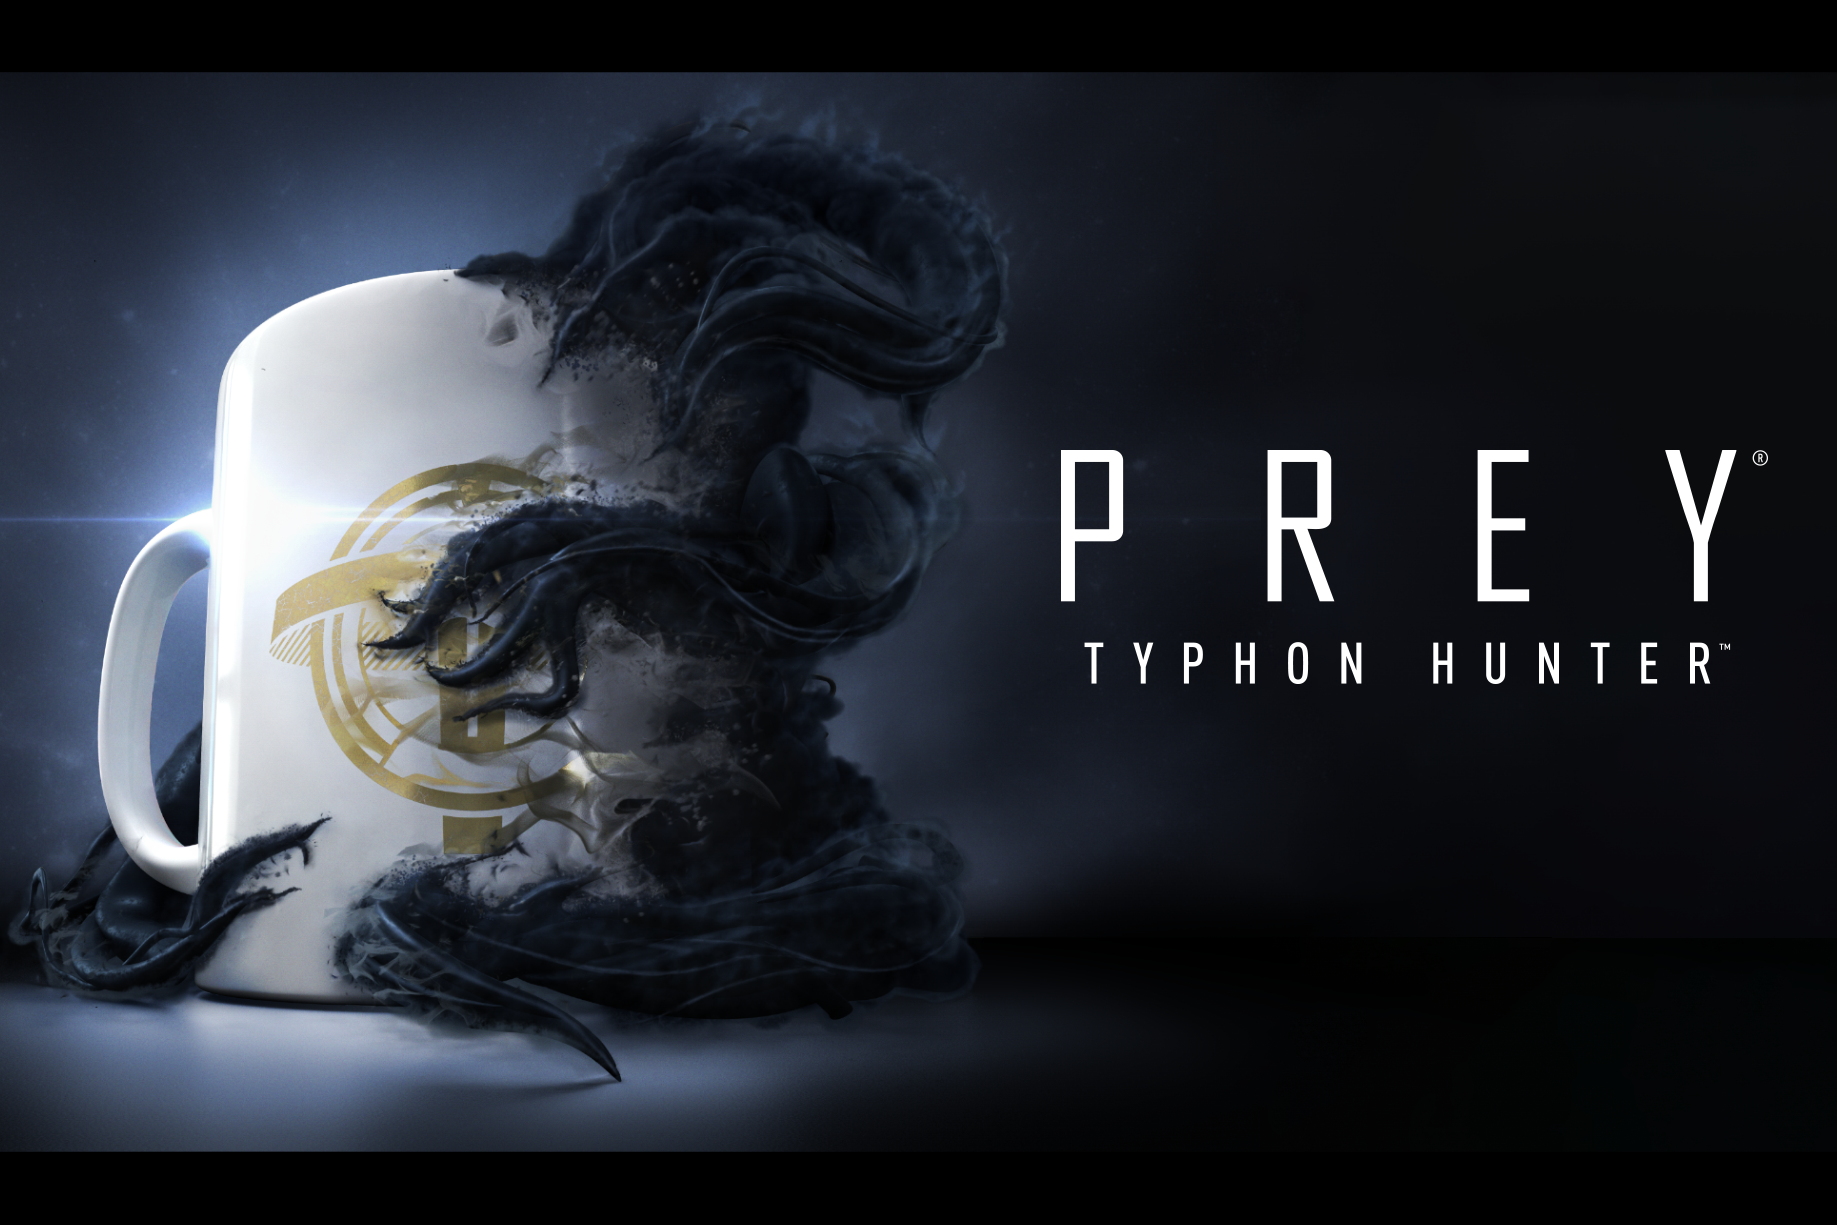 PREY_TyphonHunter_Splash-1920x1080-01-logo_1544102588